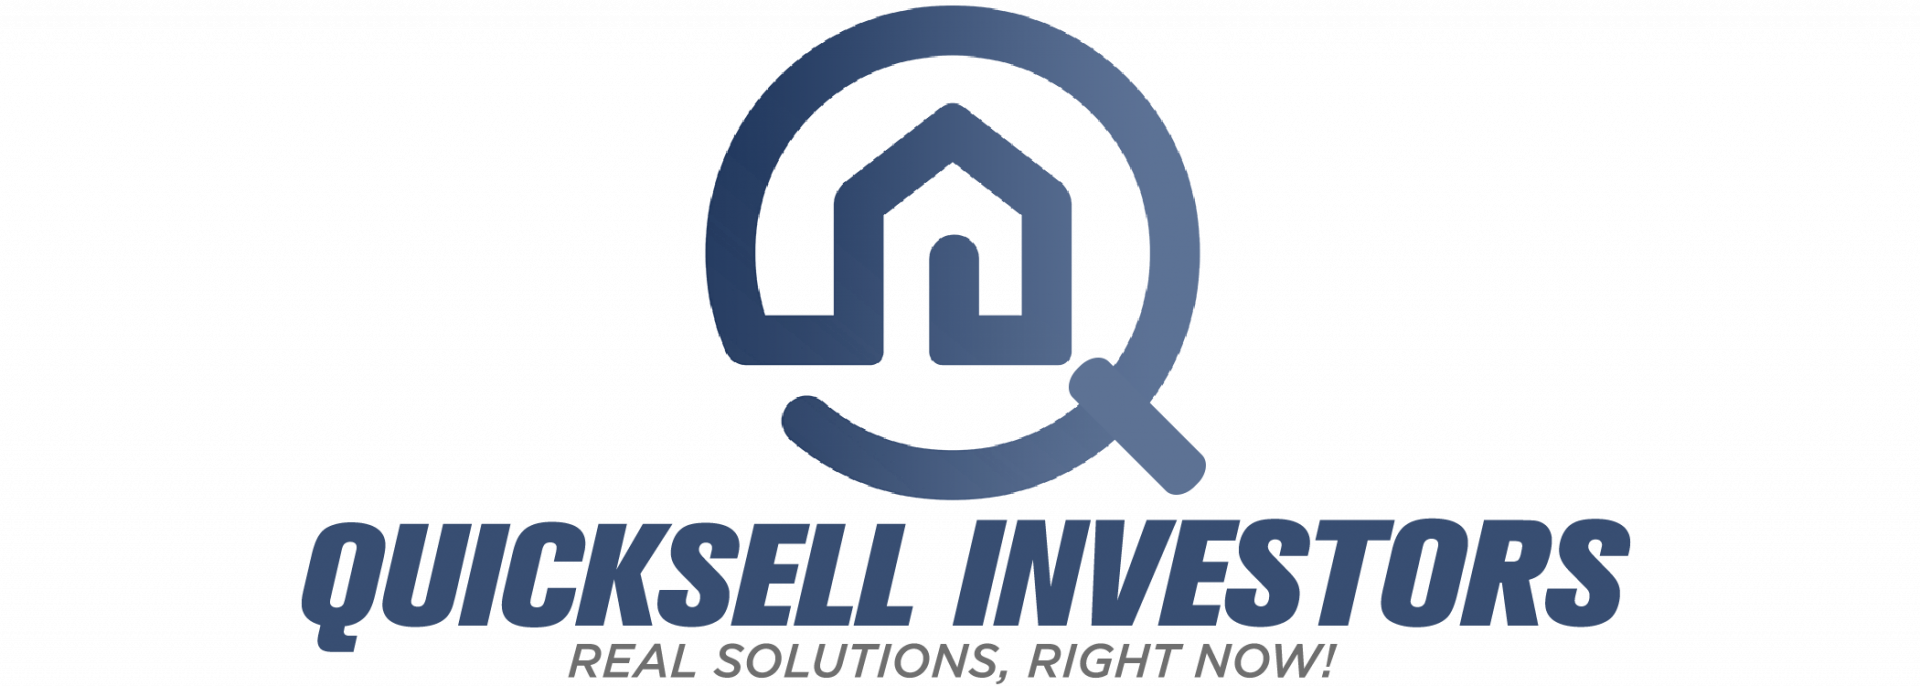 Sell Your House Fast in El Paso logo